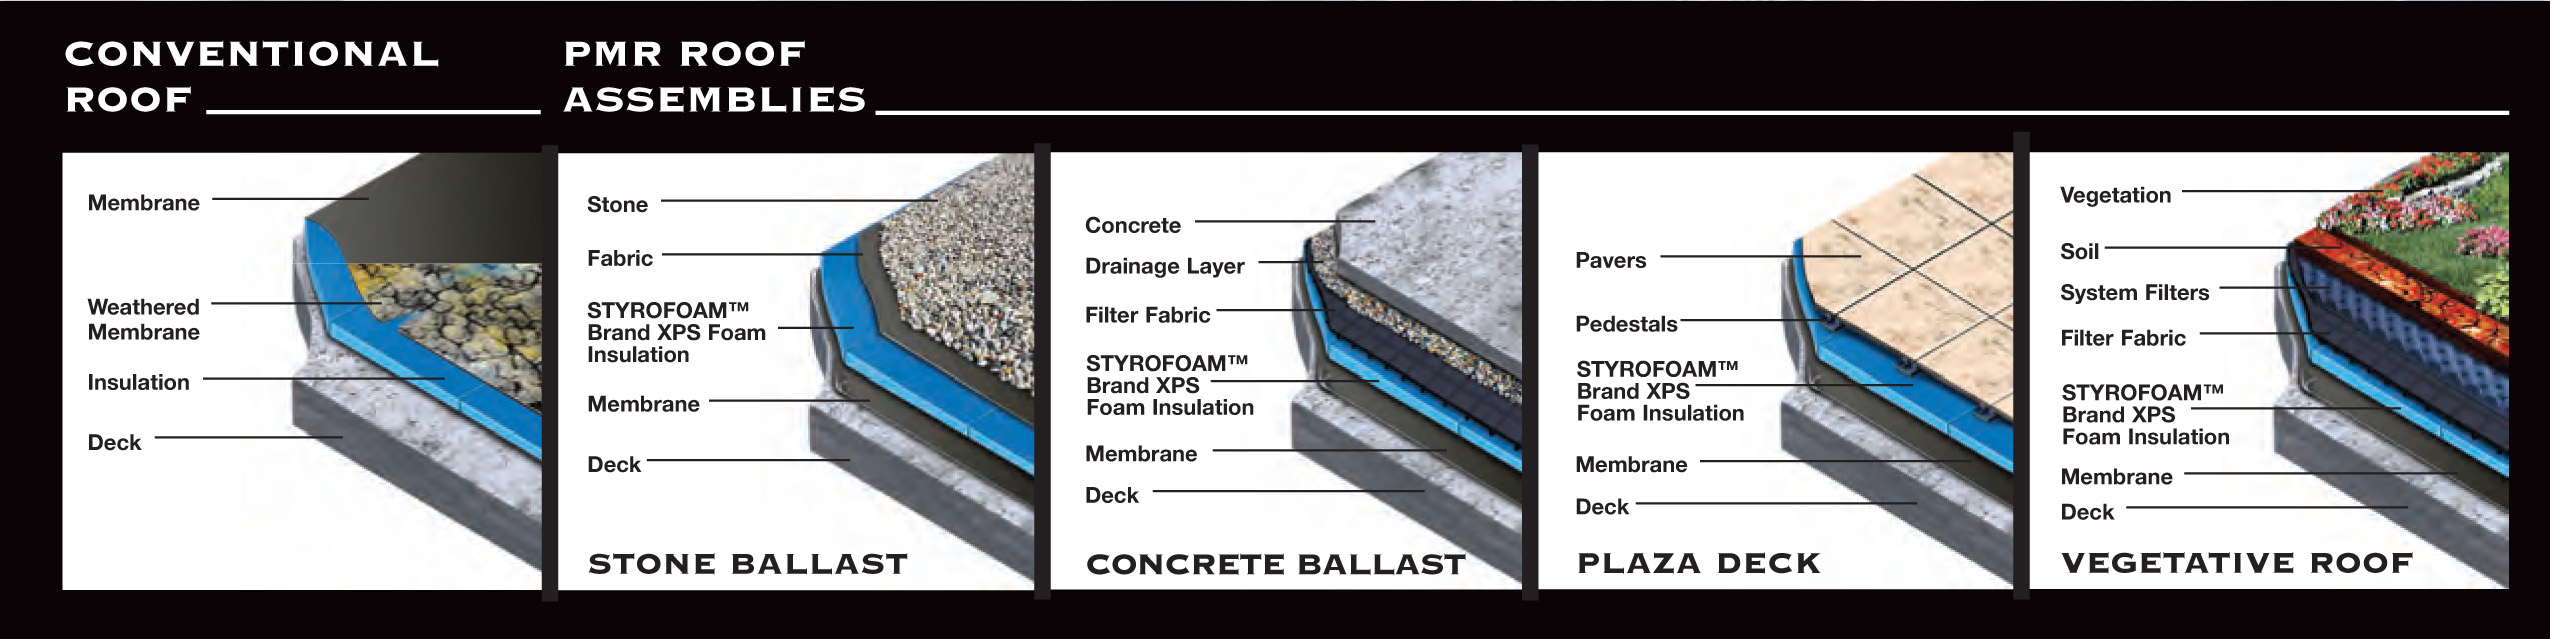 Protected Membrane Roof